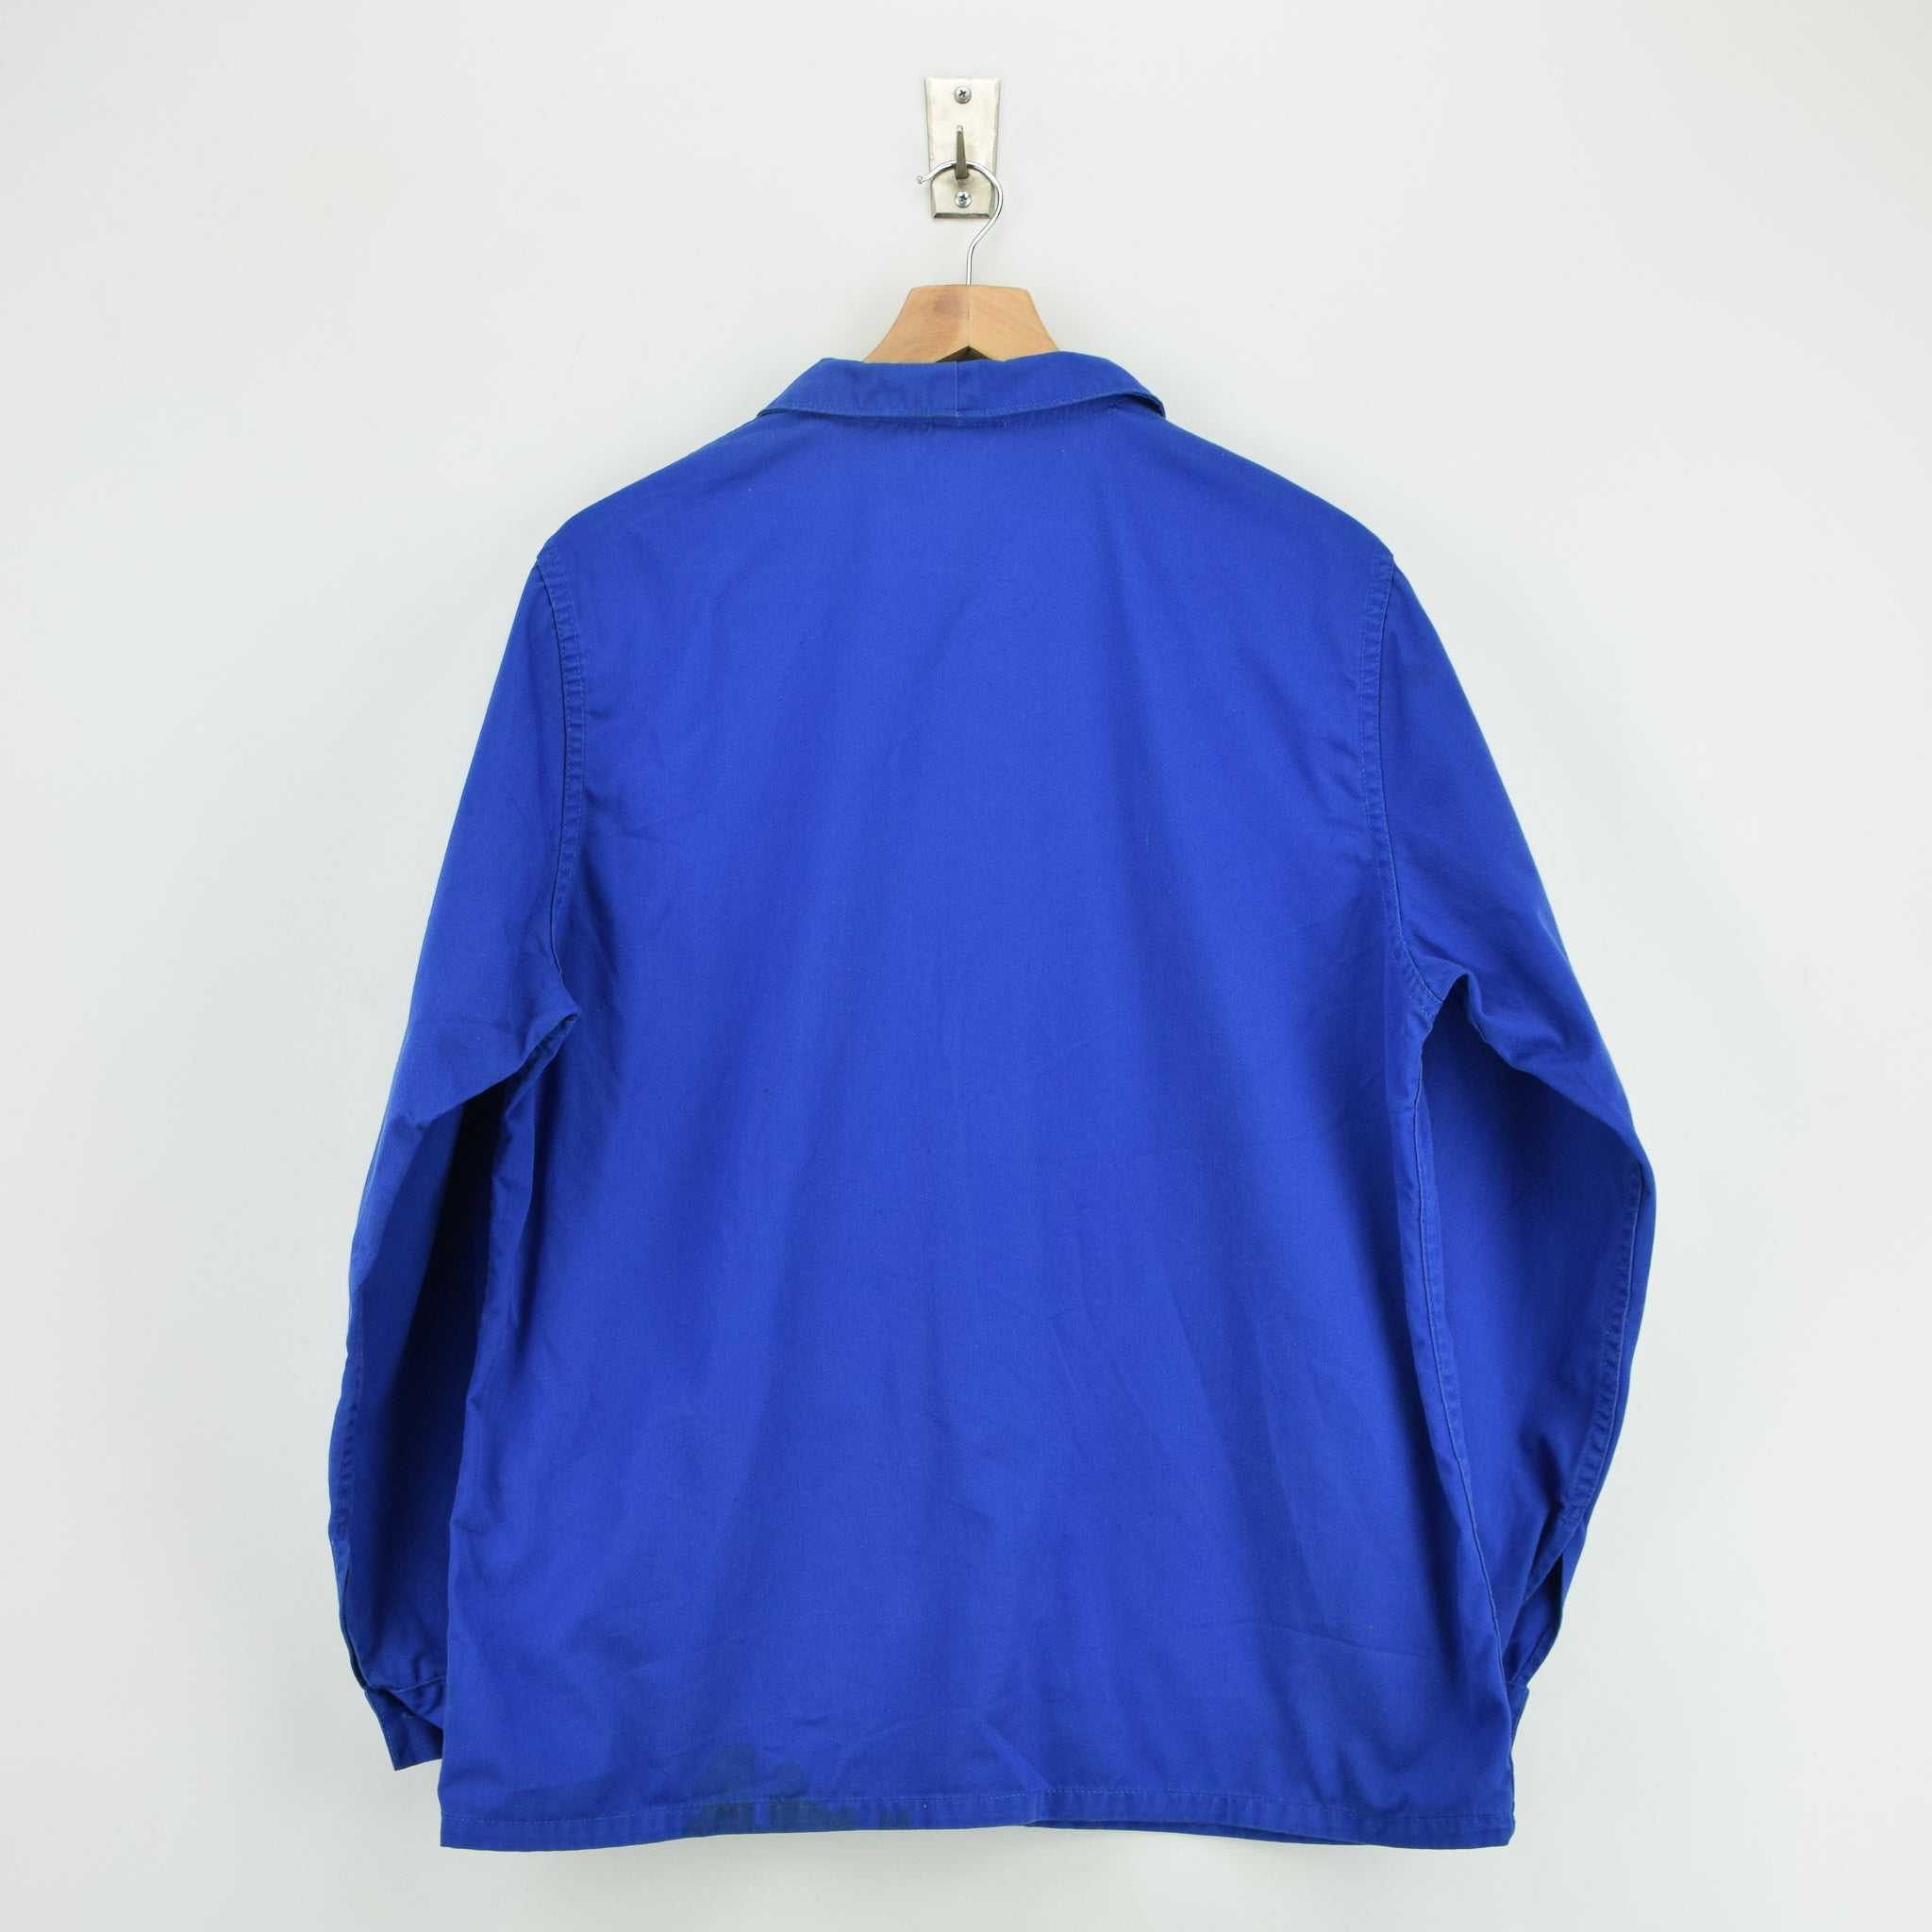 Vintage Bright Blue French Style Worker Sanforized Cotton Chore Jacket L back